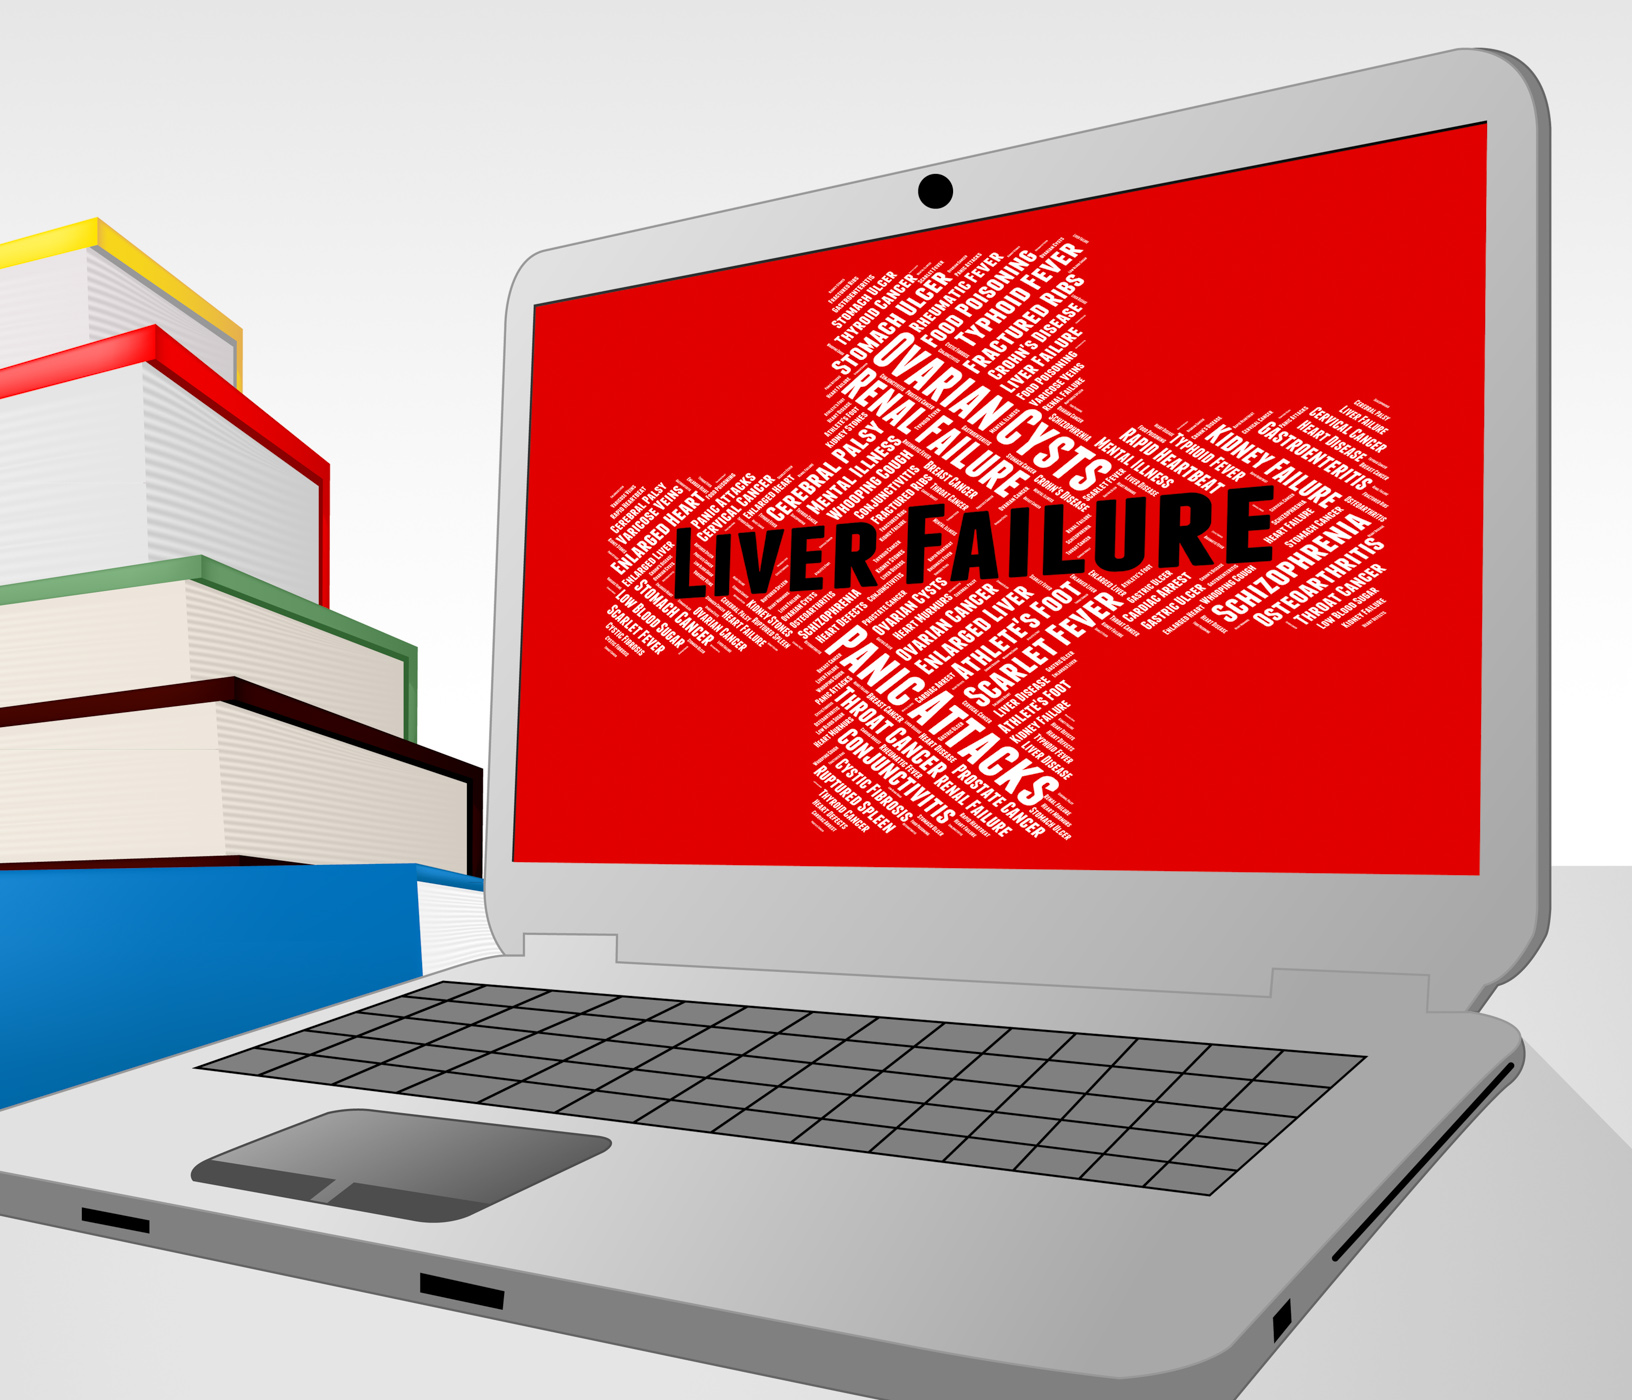 Liver failure means lack of success and afflictions photo